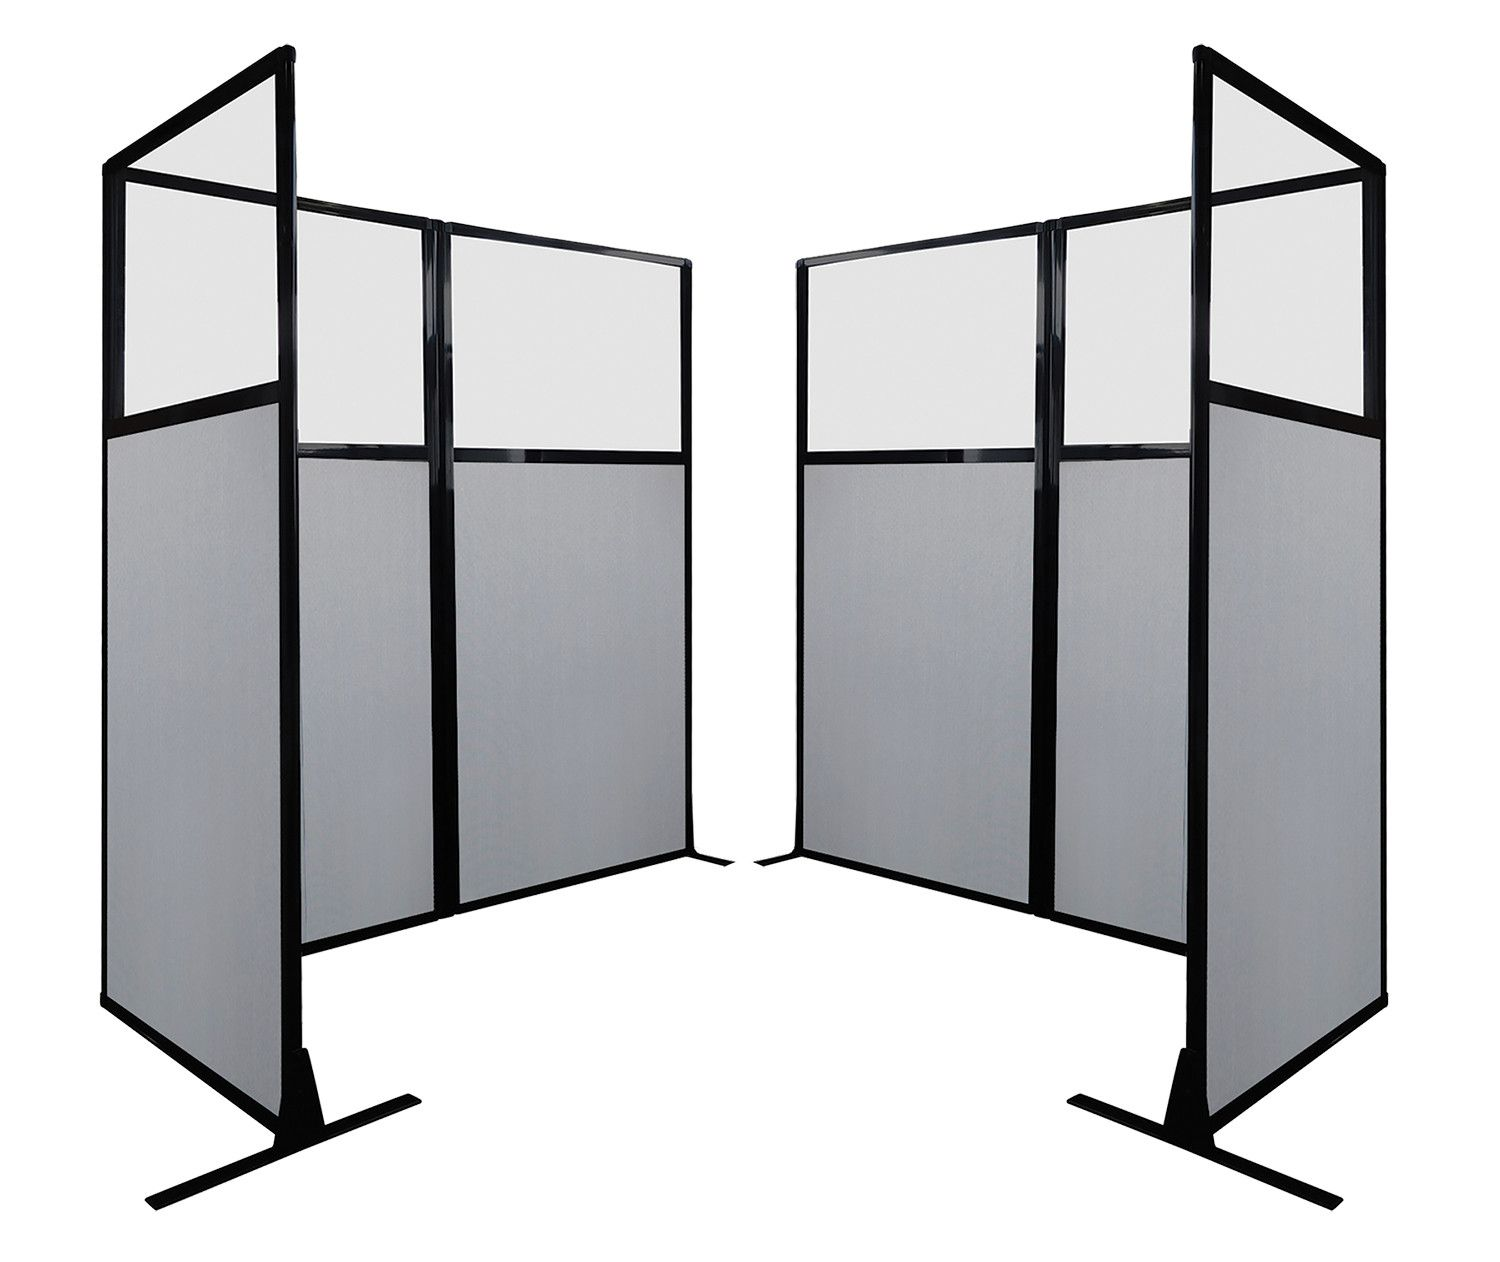 Create Instant Privacy With Our Portable Work Station Screens